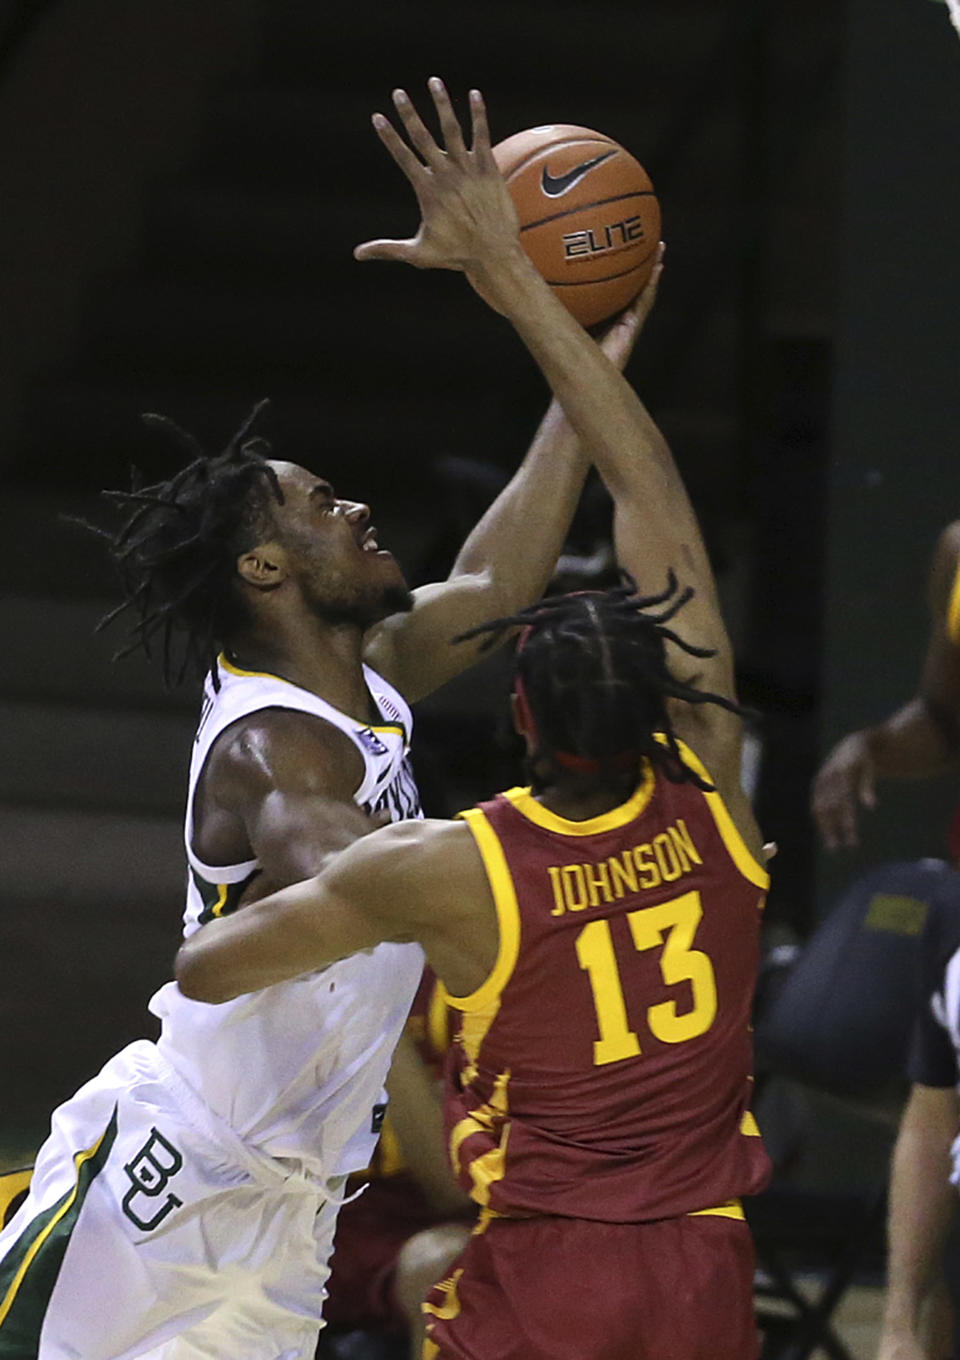 Baylor guard Davion Mitchell (45) attempts a shot past Iowa State forward Javan Johnson (13) in the first half of an NCAA college basketball game, Tuesday, Feb. 23, 2021, in Waco, Texas. (AP Photo/Jerry Larson)